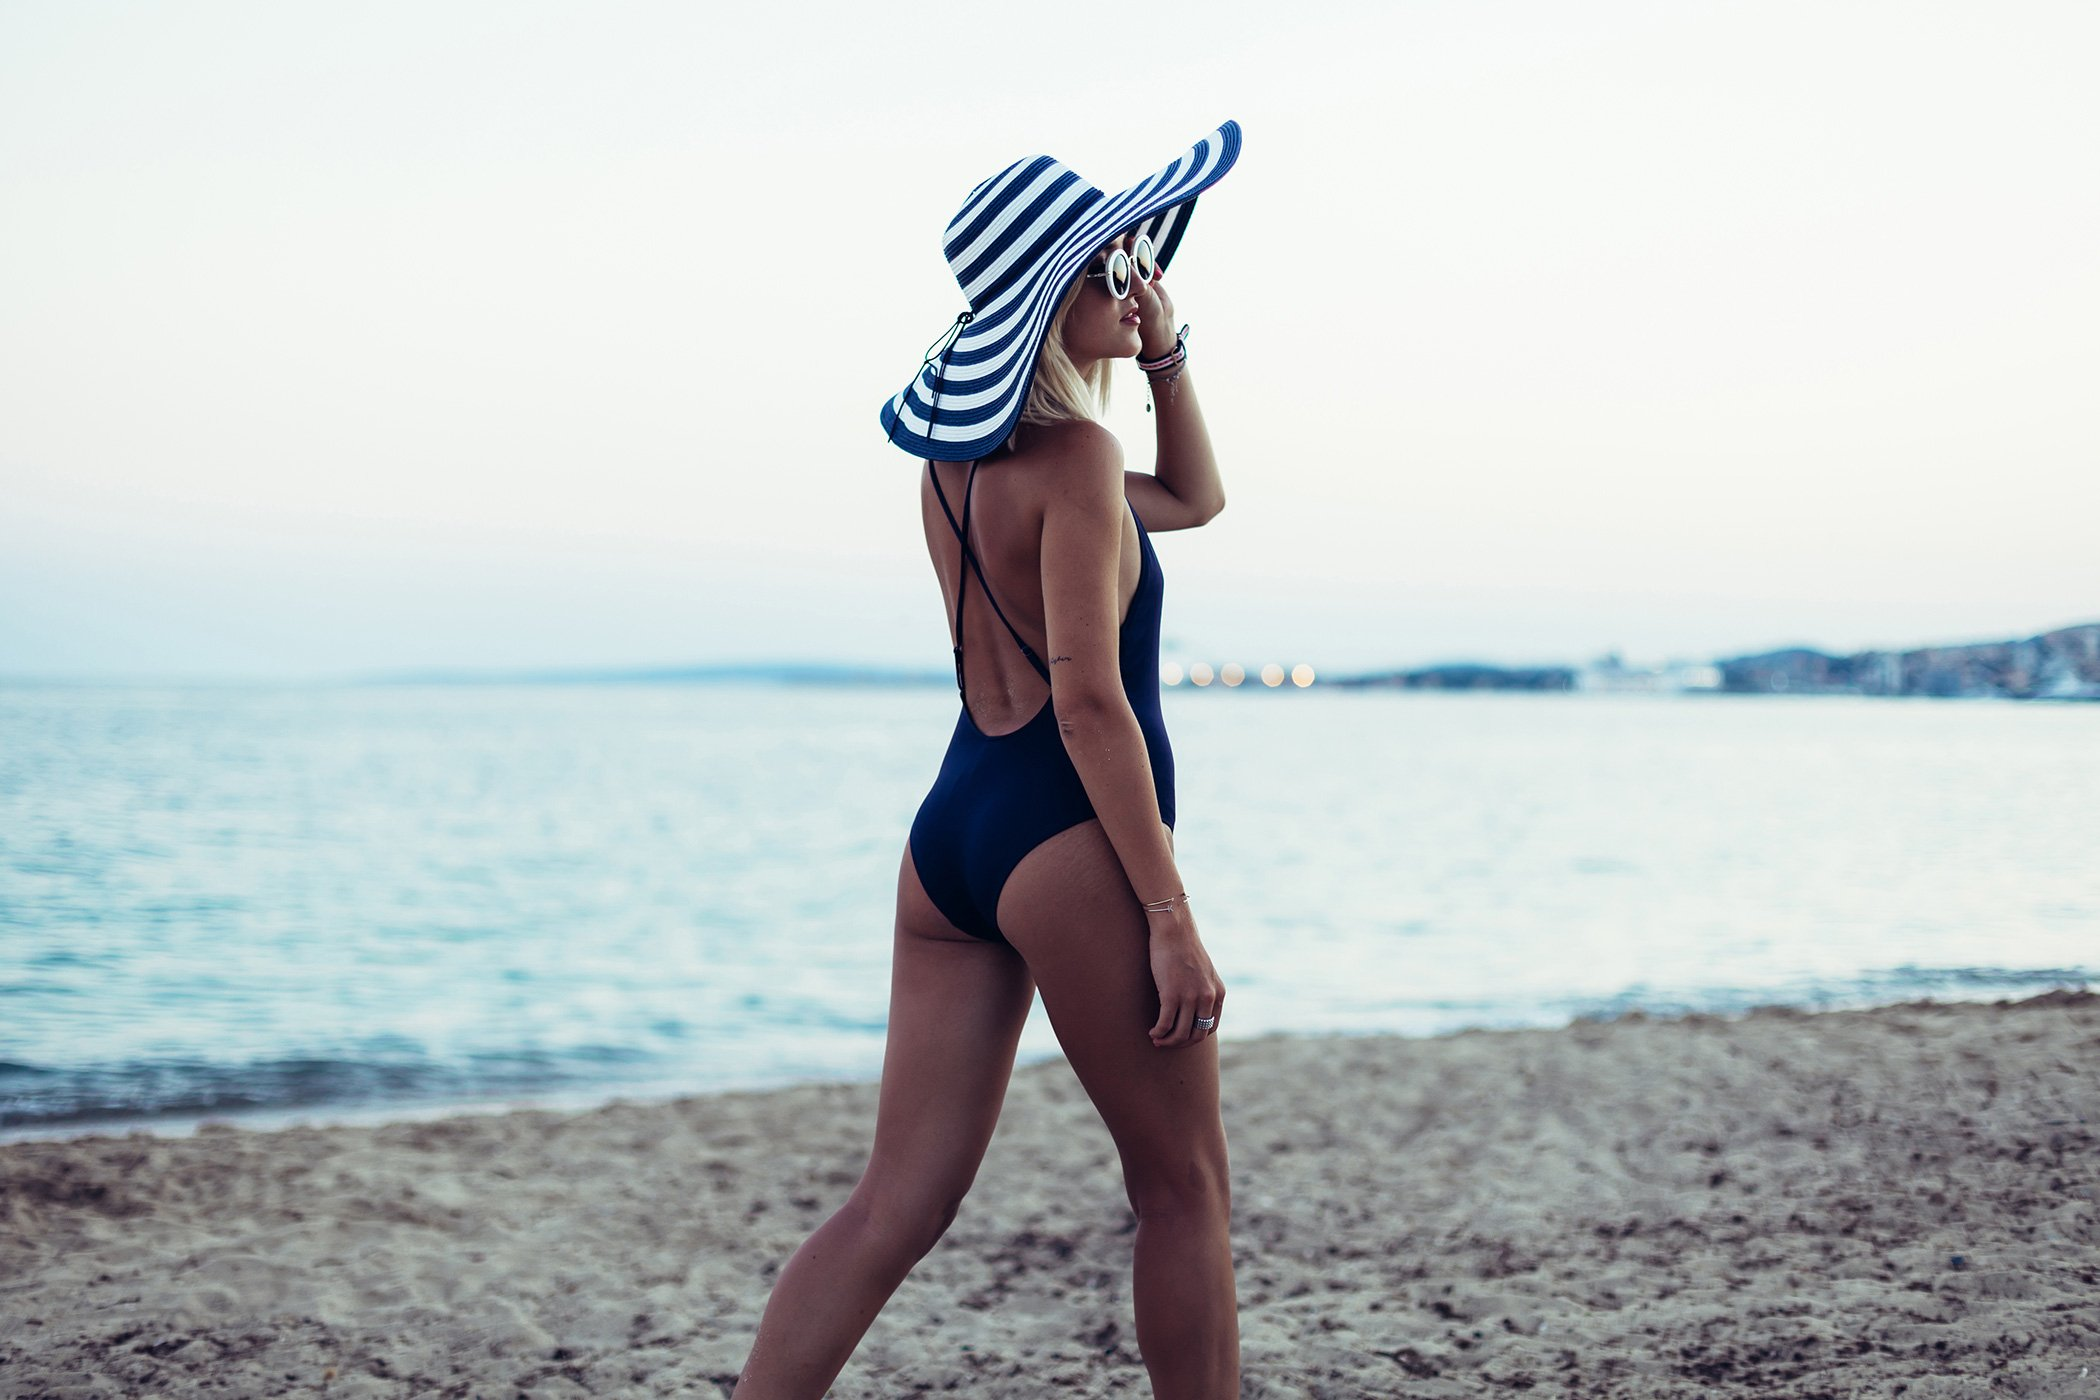 mikutas bathing suit and hat outfit